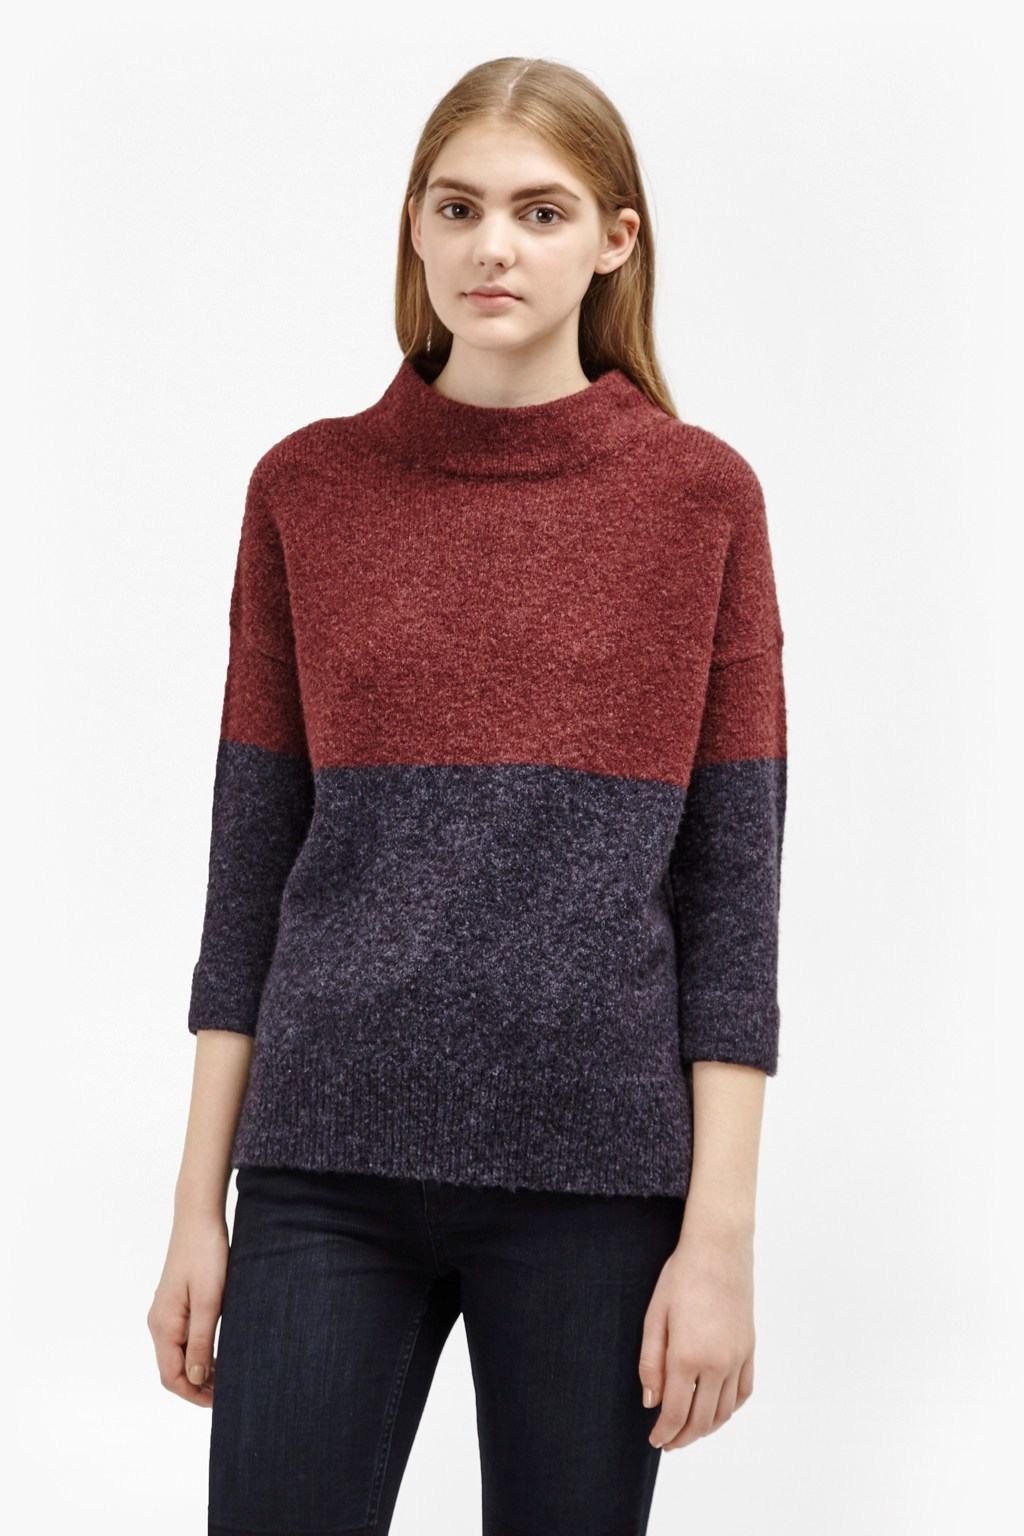 Rsvp Colour Block Knit Jumper Nocturnal/Winter Wine - neckline: high neck; style: standard; predominant colour: navy; secondary colour: navy; occasions: casual; length: standard; fibres: wool - mix; fit: standard fit; sleeve length: 3/4 length; sleeve style: standard; texture group: knits/crochet; pattern type: fabric; pattern: colourblock; season: a/w 2016; wardrobe: highlight